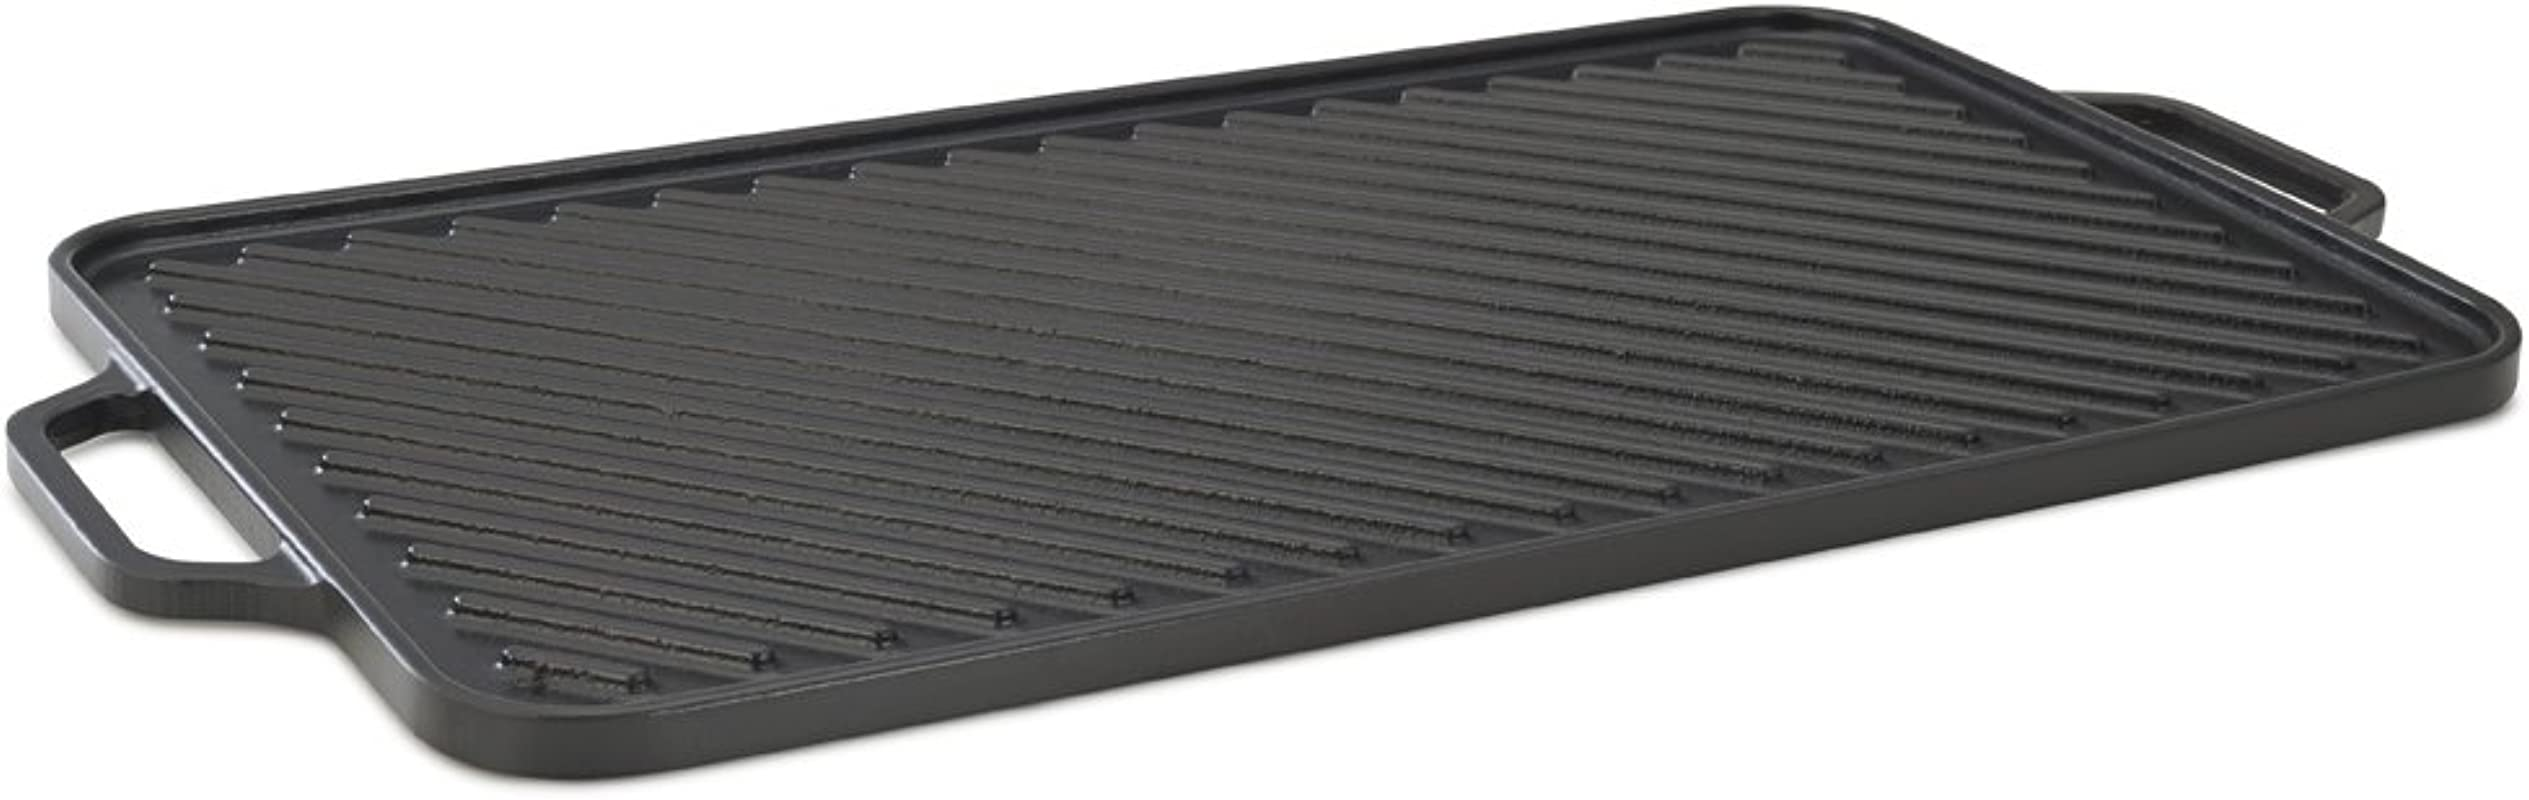 Cast Iron Griddle Enameled Cast Iron Grill 18 5 Inches Black